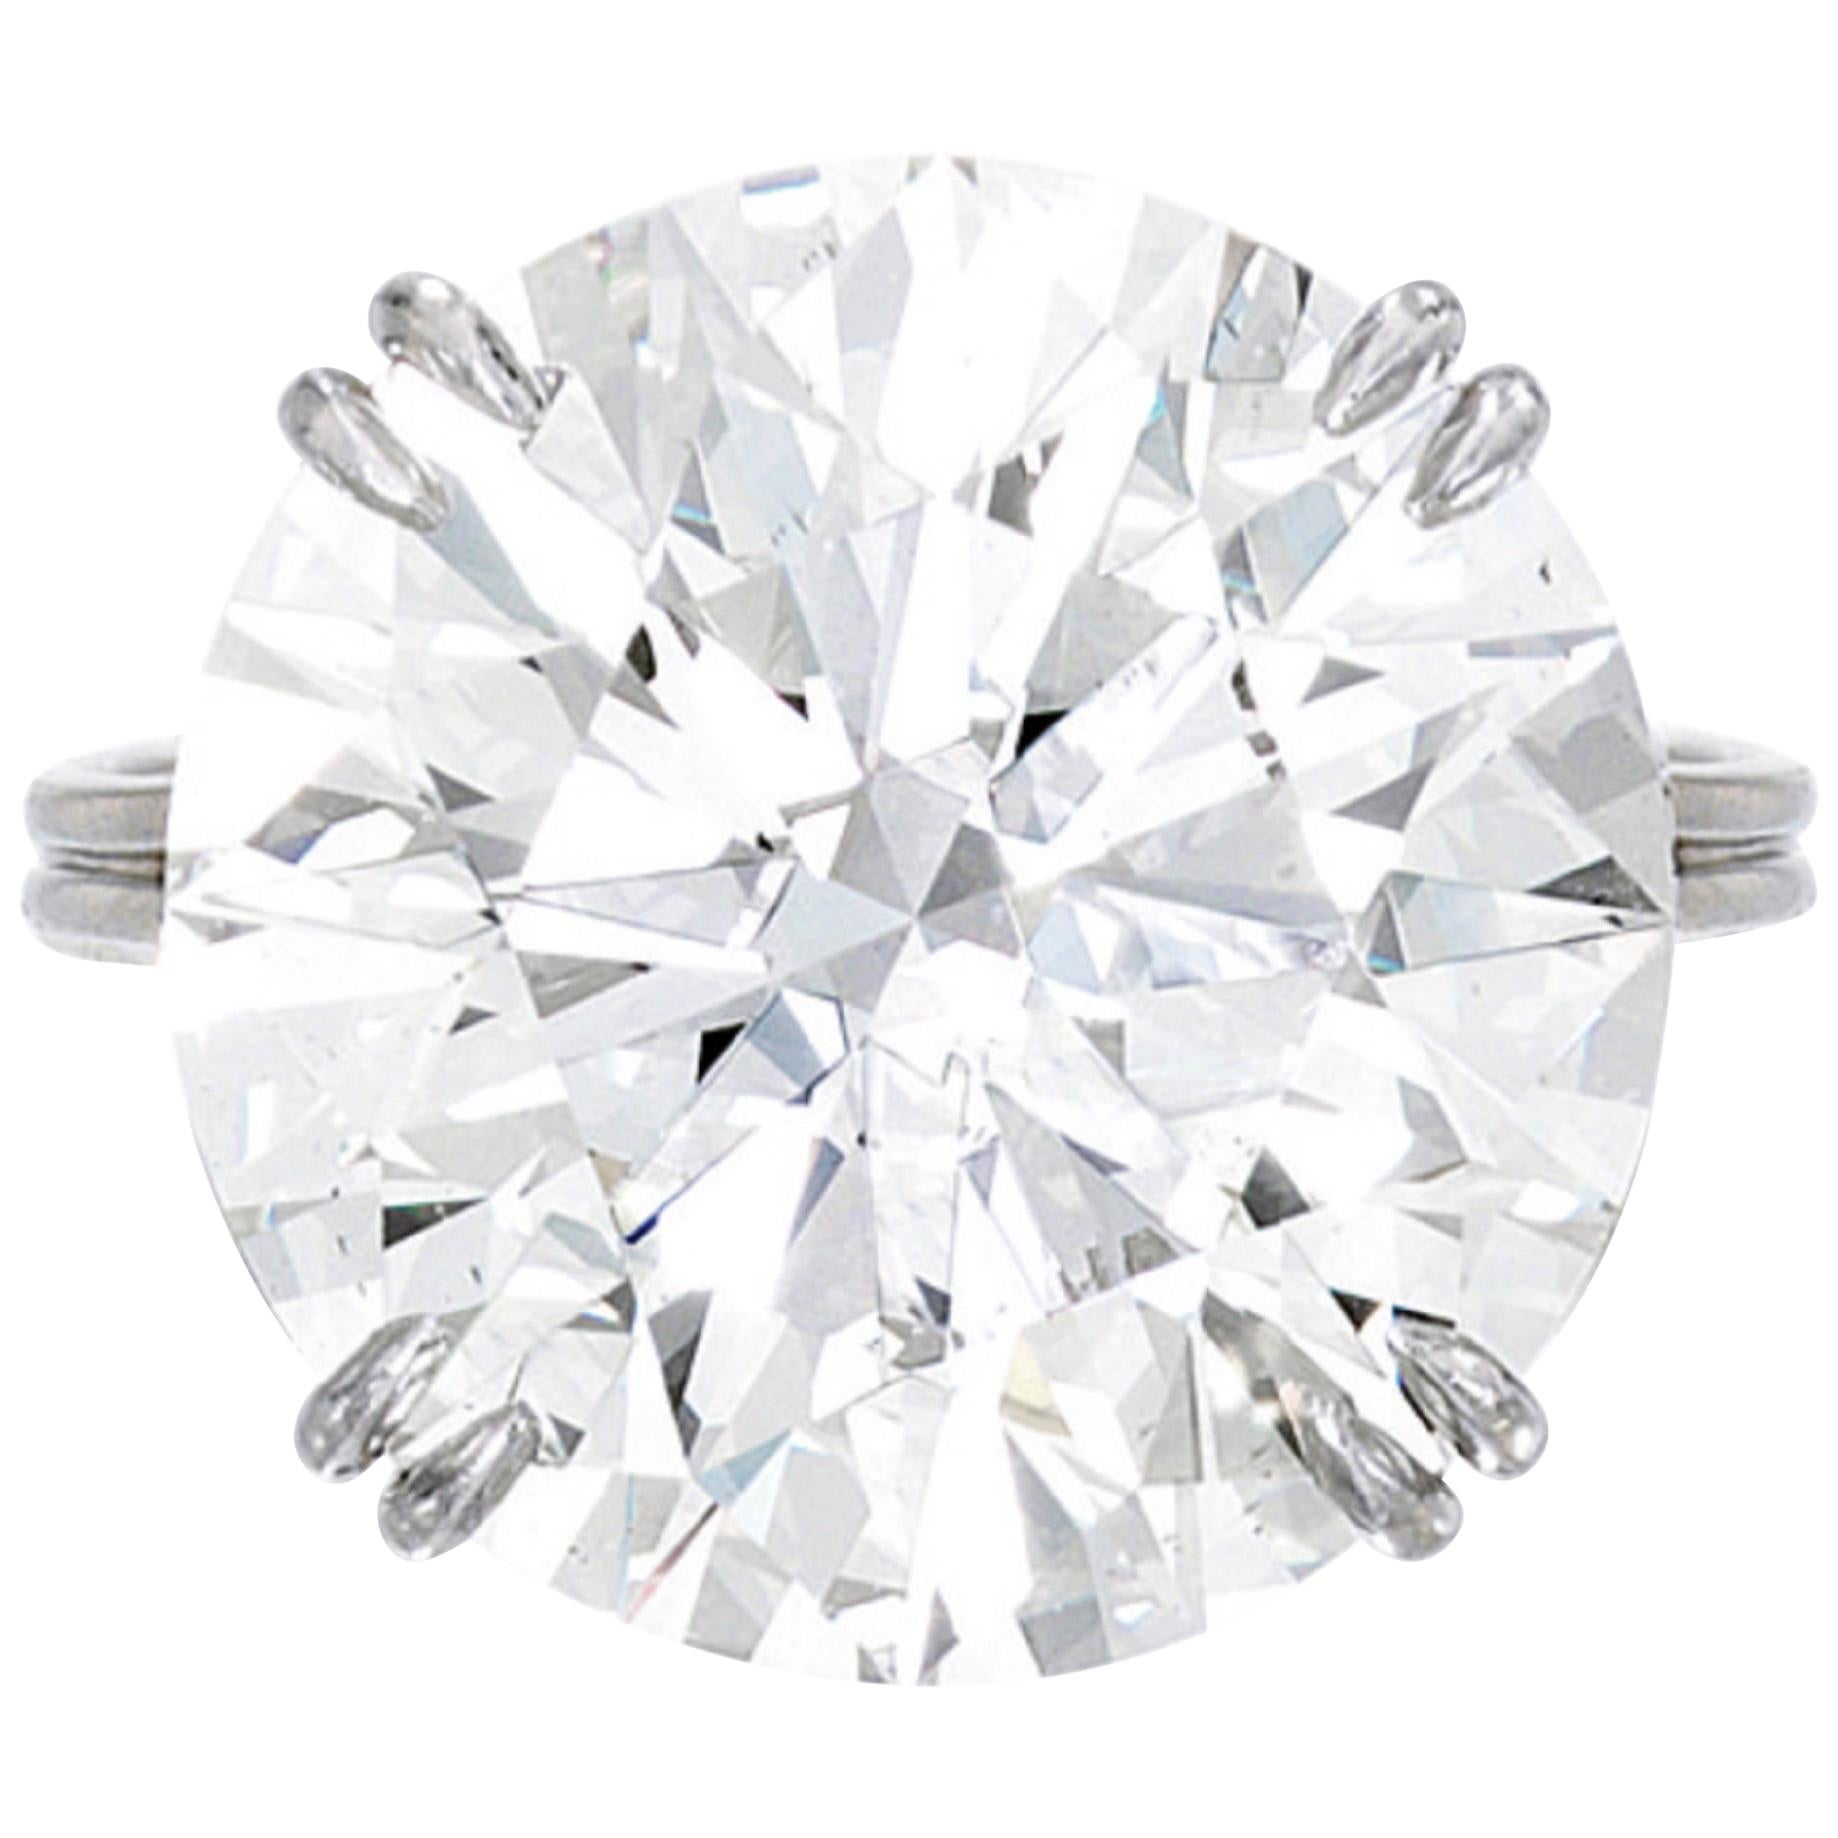 I Flawless GIA Certified 8 Carat Round Brilliant Cut Diamond Ring